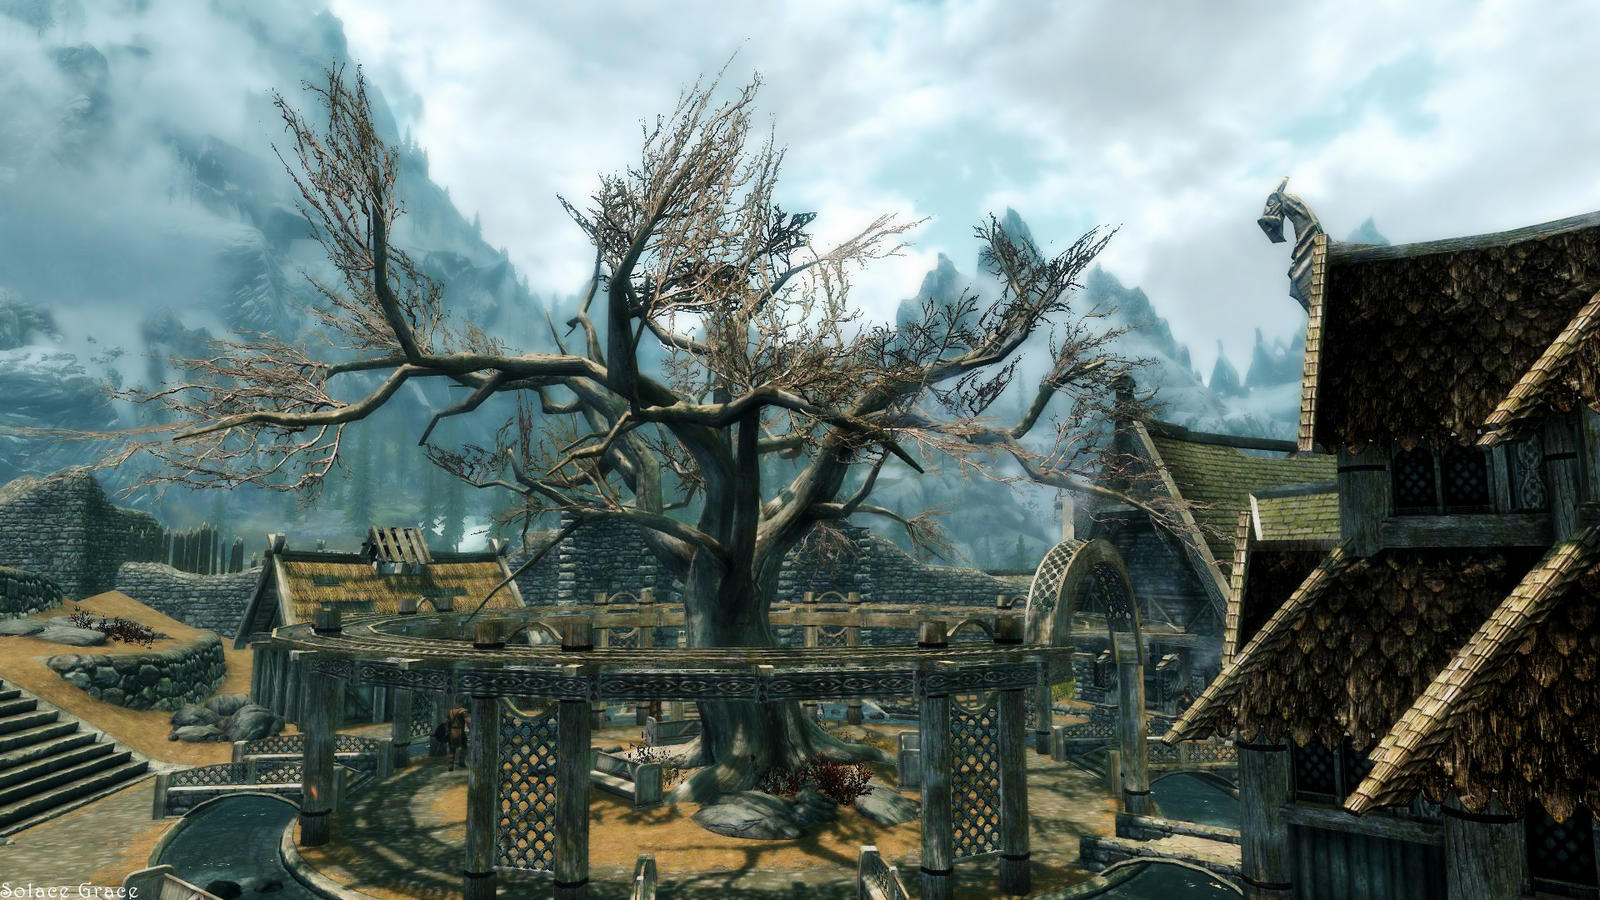 The Slumbering Tree At Whiterun By Solace Grace On DeviantArt